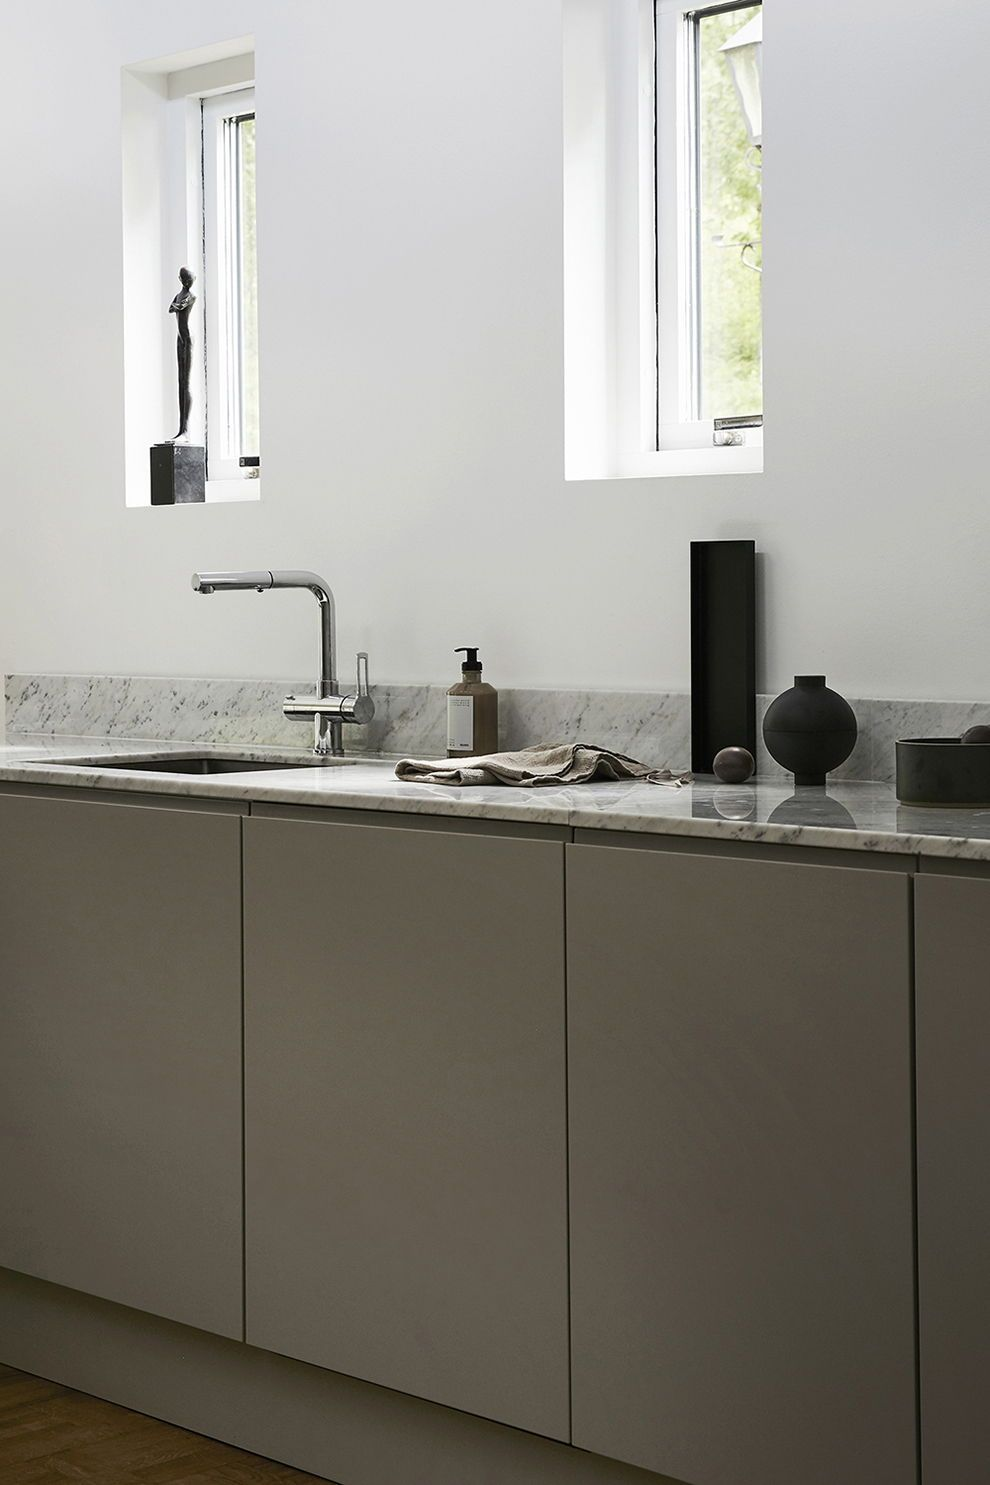 The Best Kitchen Inspiration For 2020 In 2020 Kitchen Inspirations Minimalist Kitchen Modern Kitchen